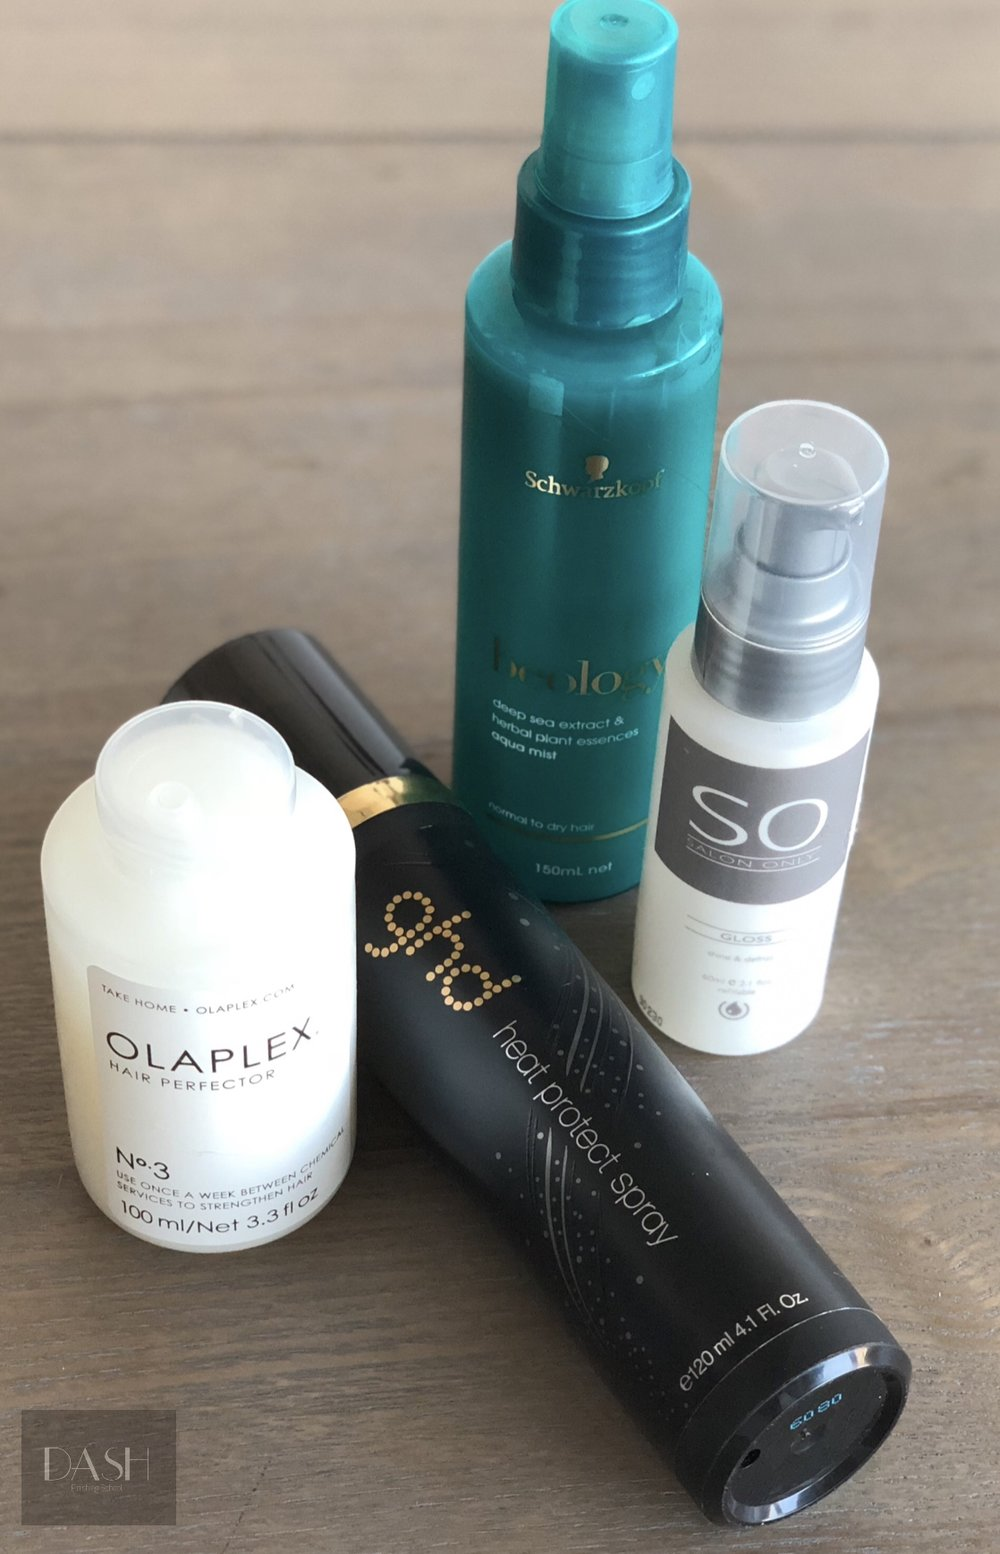 Olaplex Hair perfector No 3  ,   GHD Heat protection spray, Schwarzkopf Beology deep sea extract aqua mist, SO Gloss